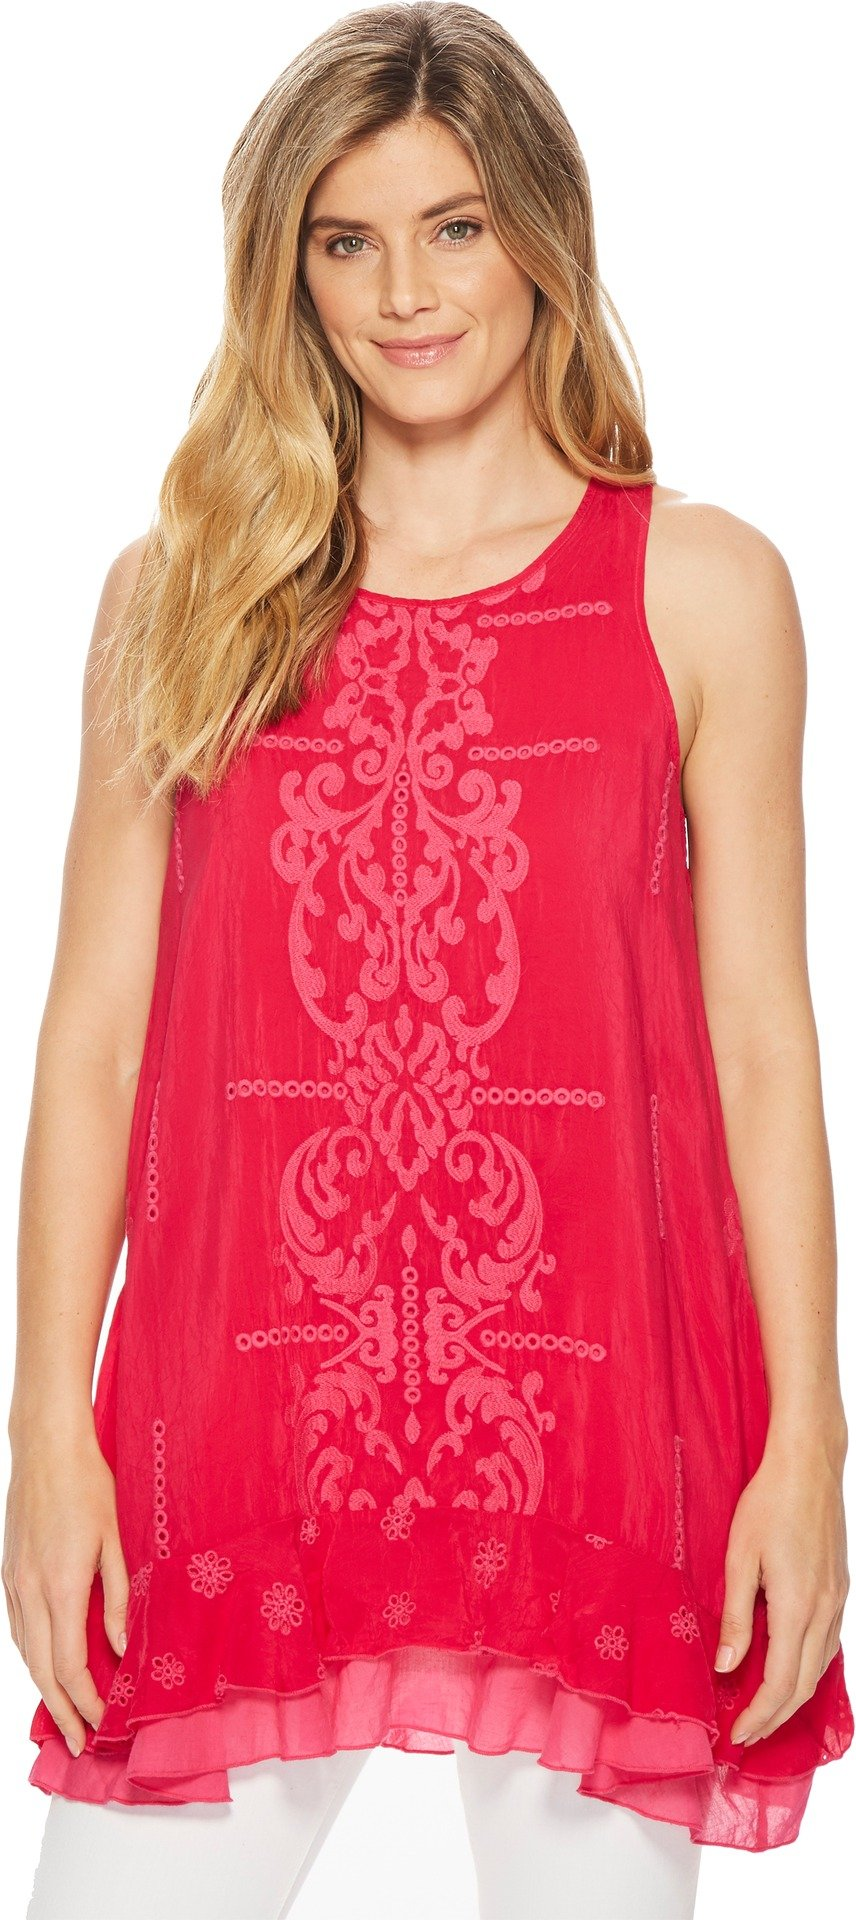 Johnny Was Women's Demoran Tank Top Pomegranate X-Large